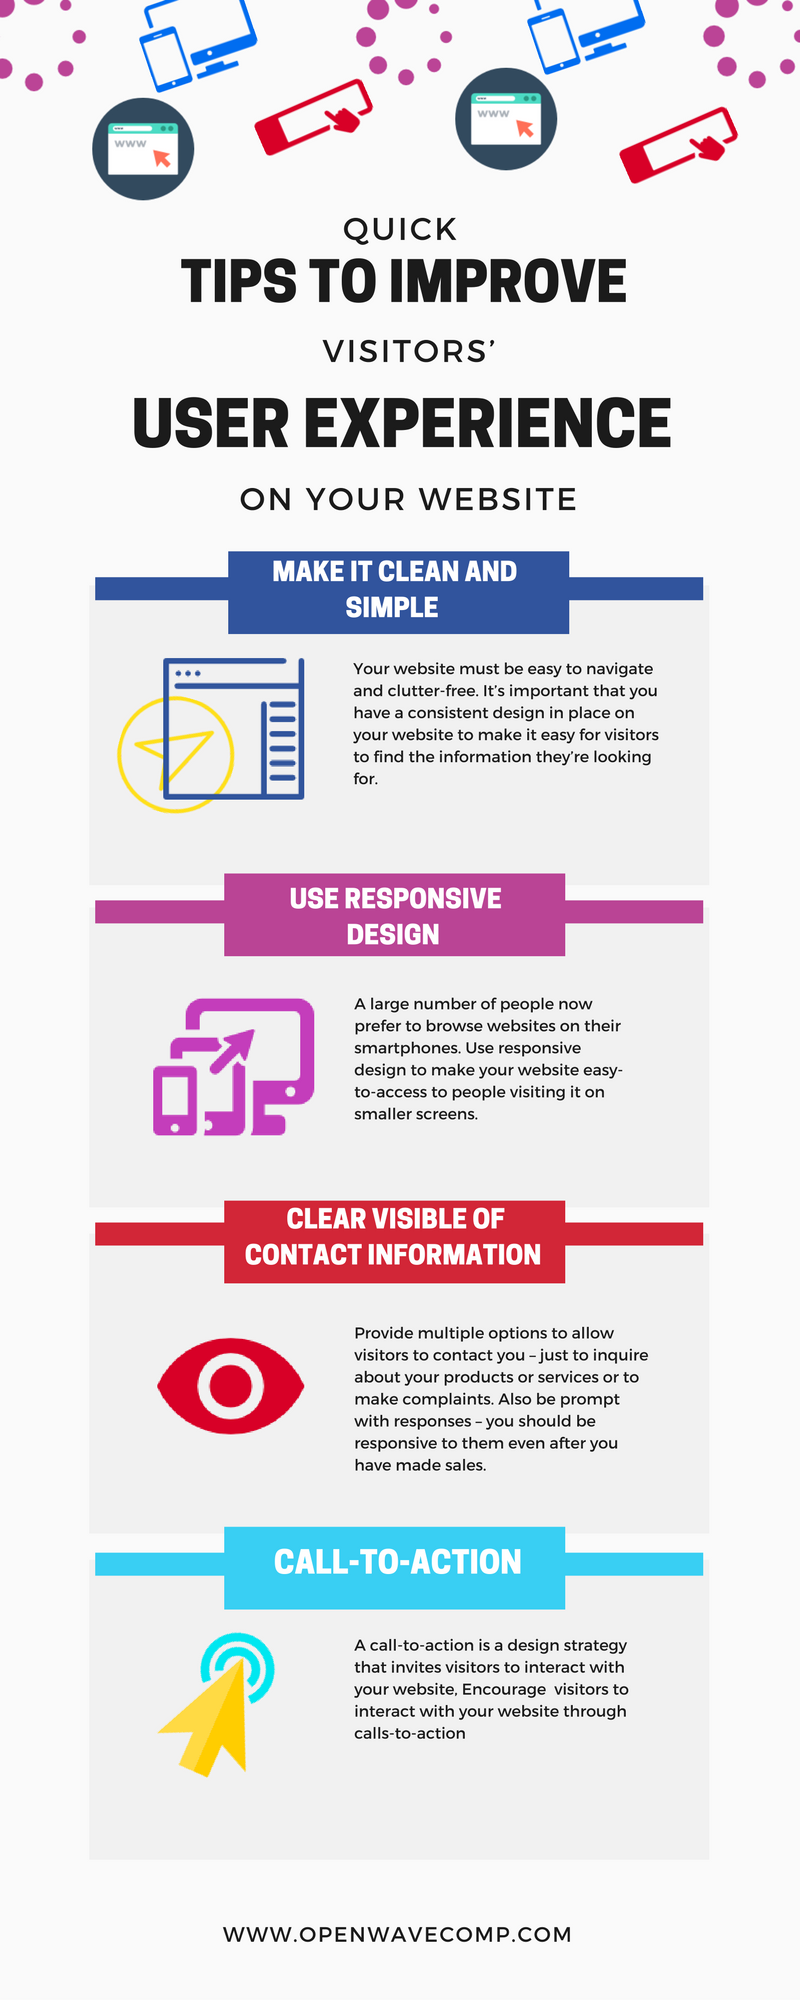 Tips to Improve Visitors User Experience on your Website